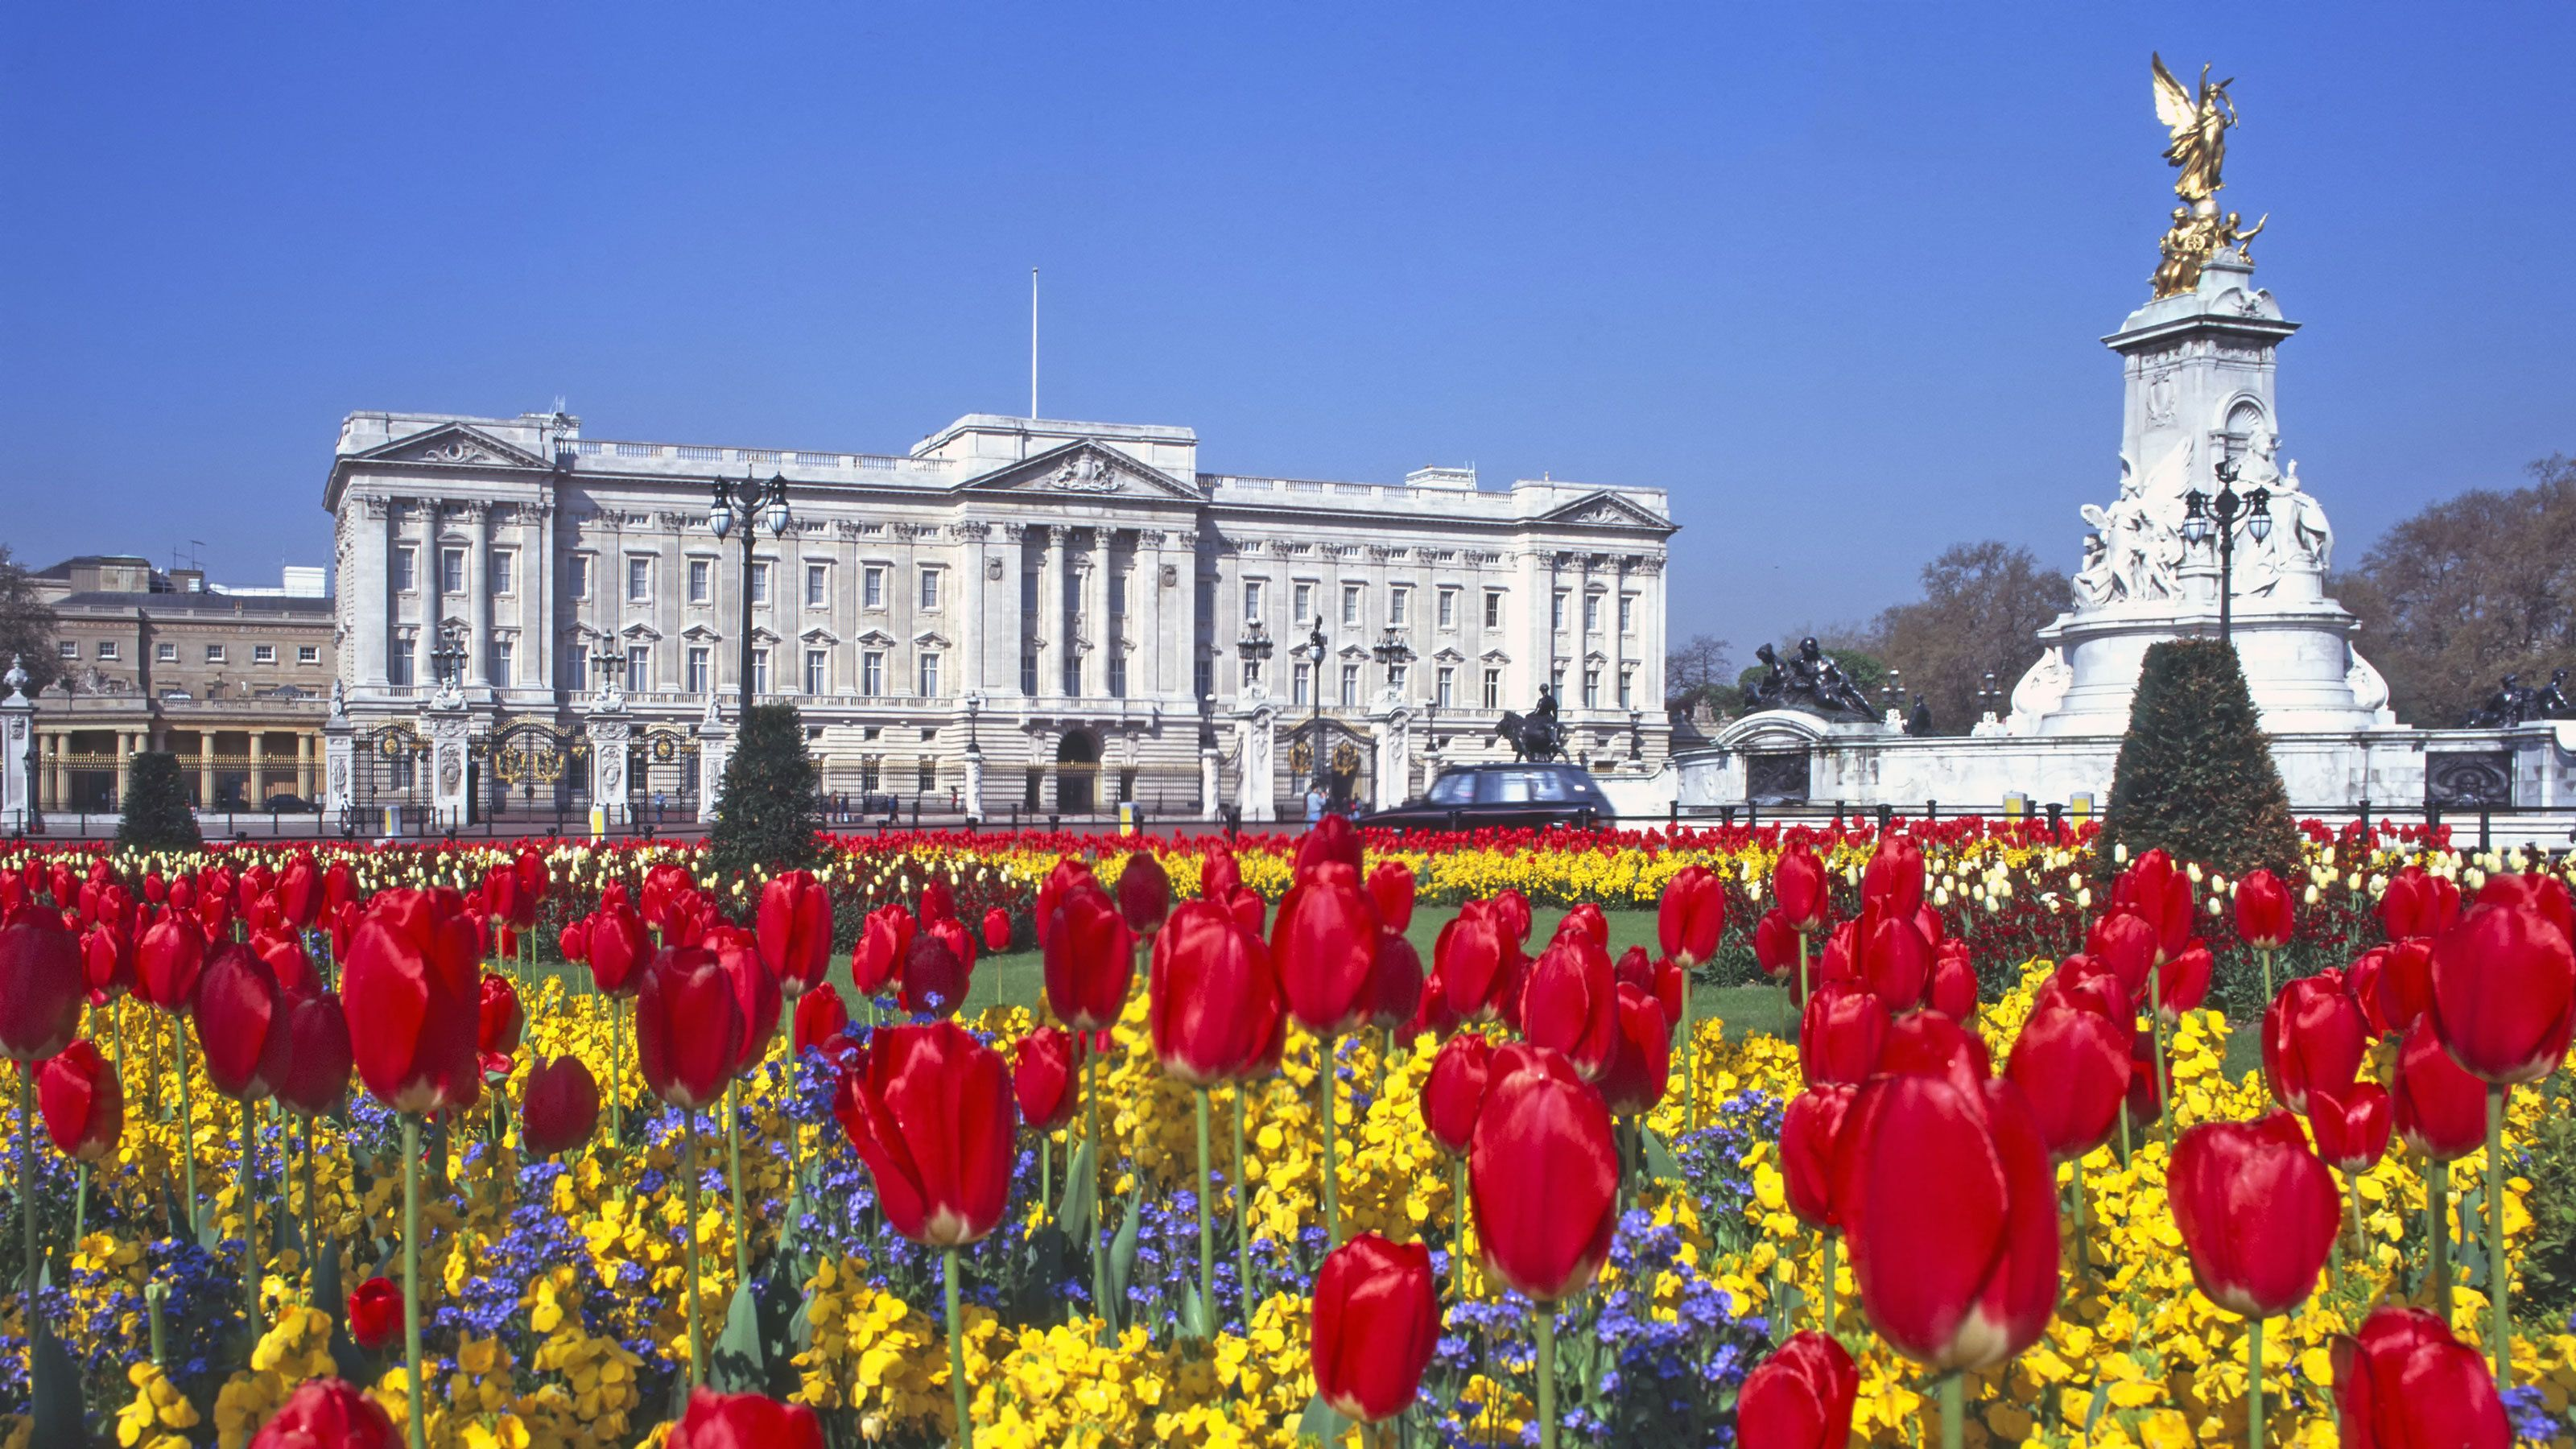 Royal flower gardens in front of Buckingham Palace in London